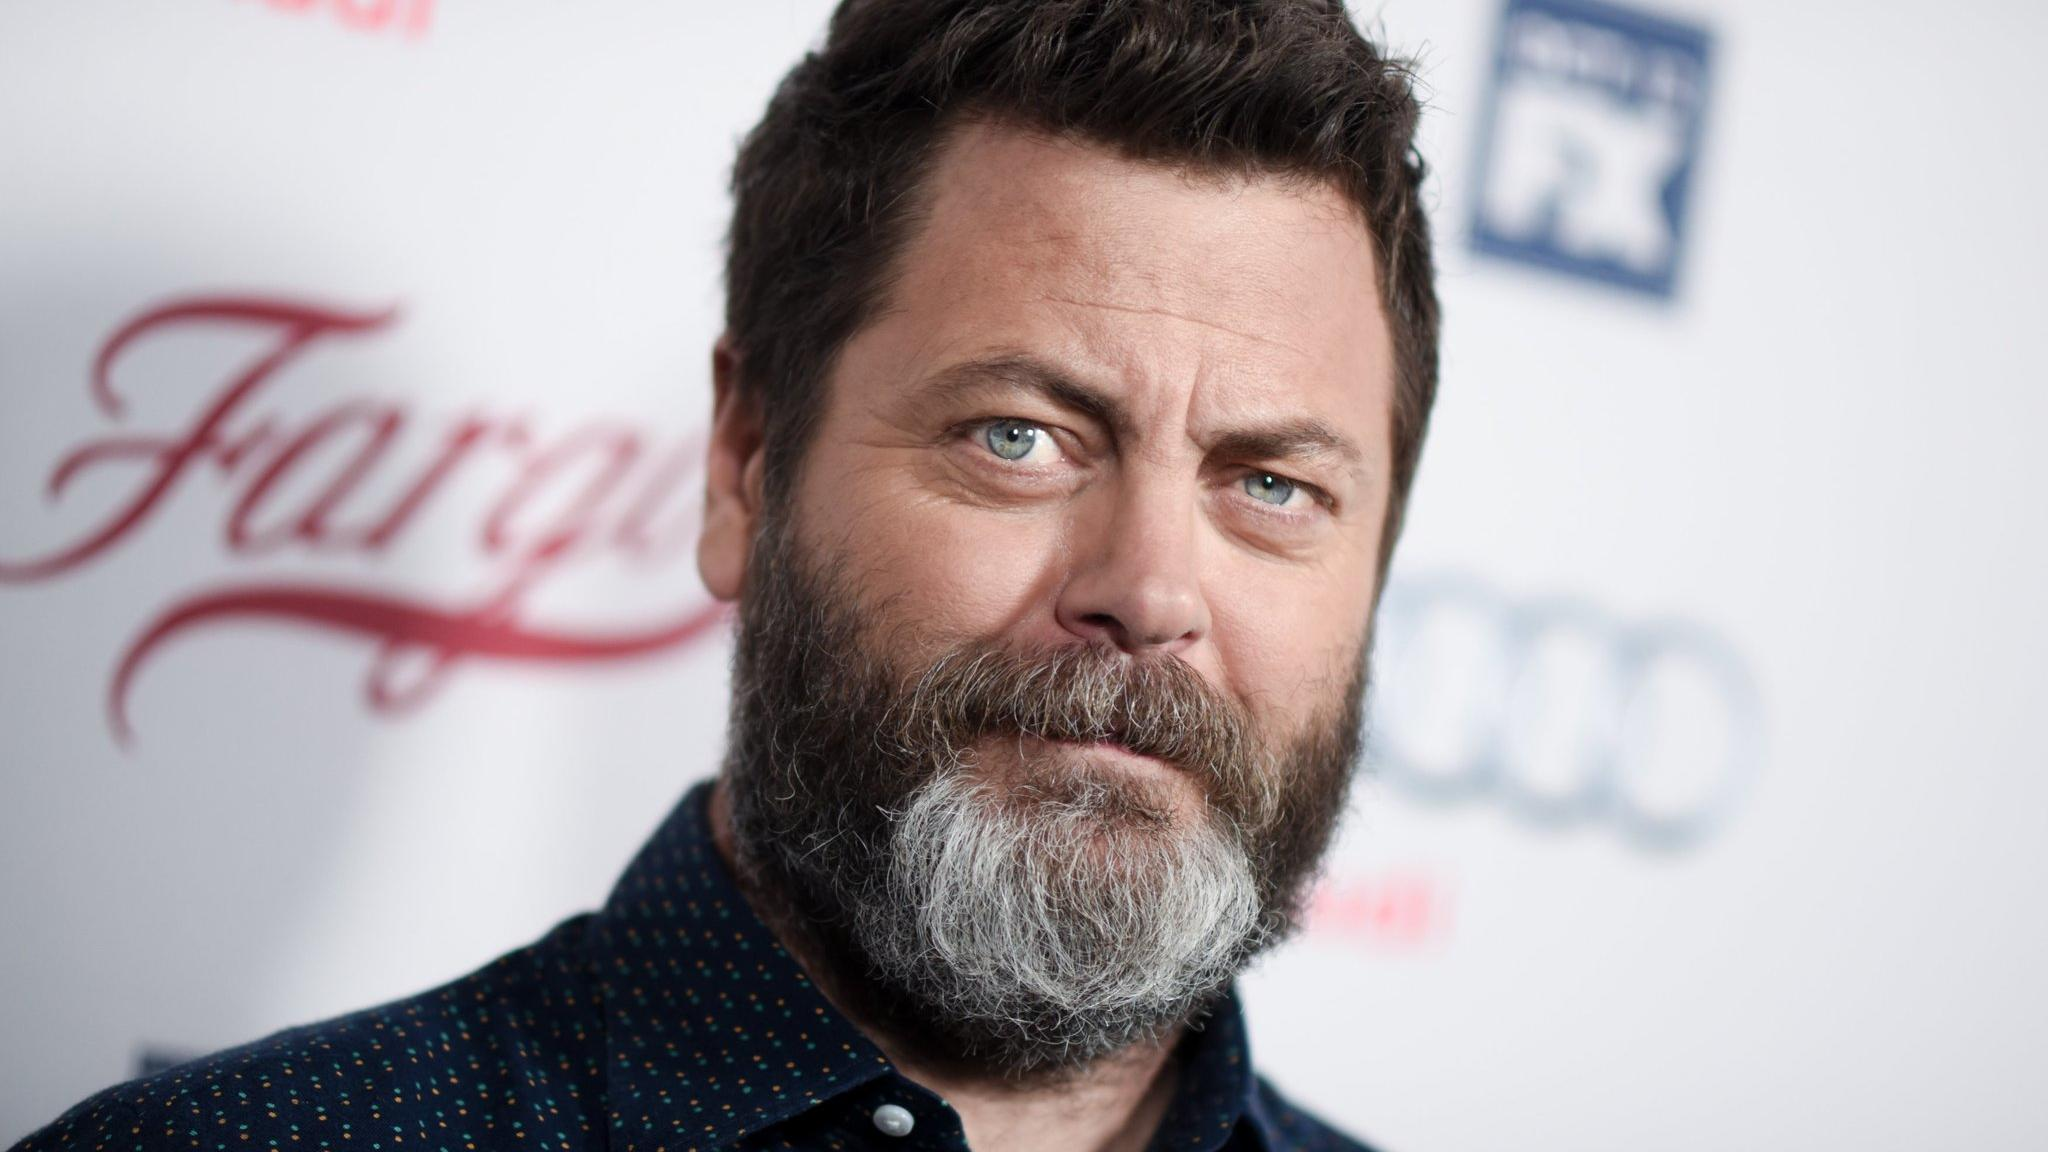 ct-nick-offerman-gumption-book-signings-201602-001